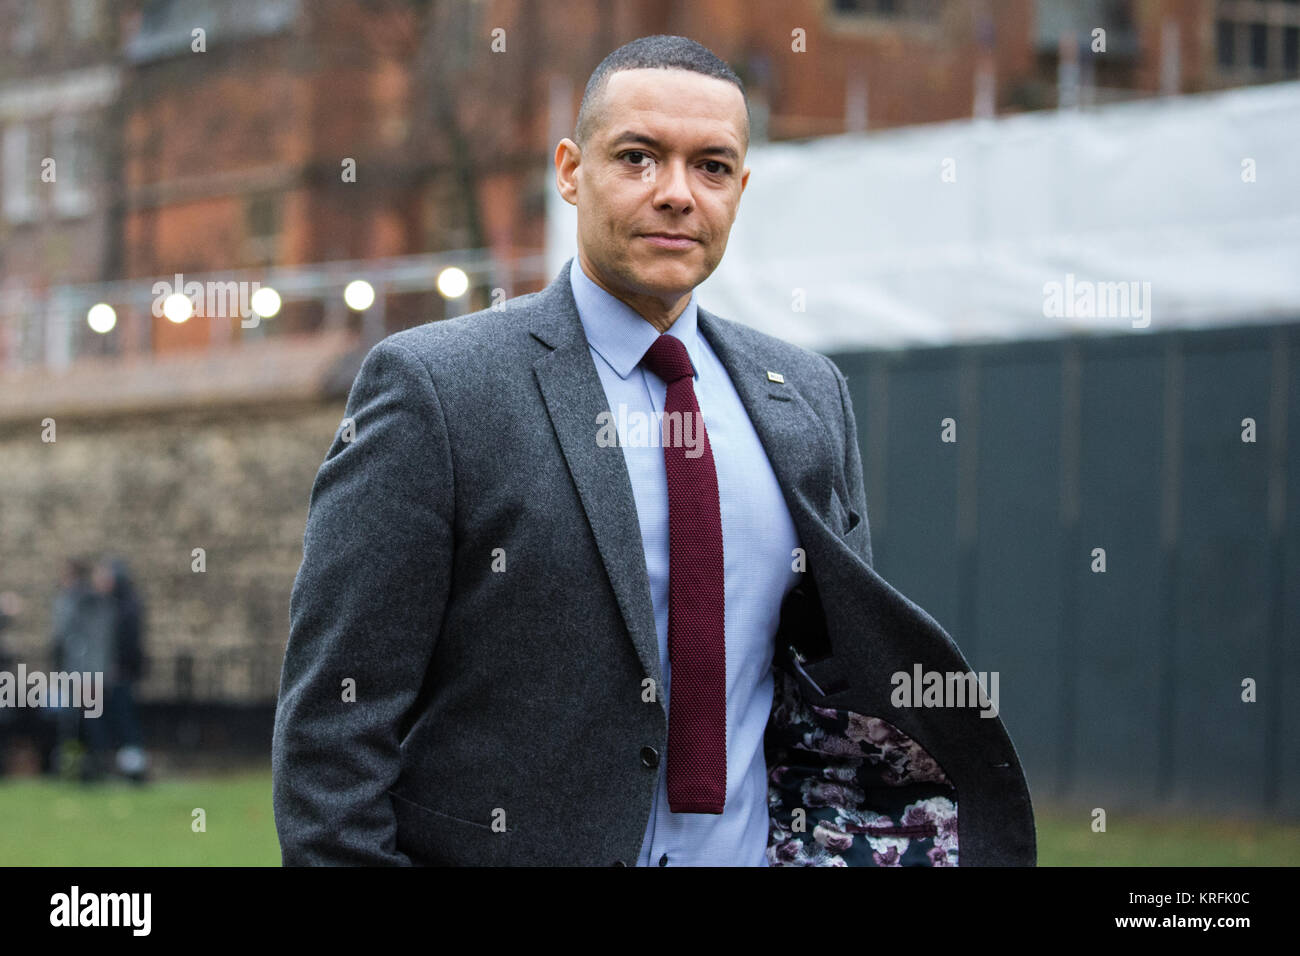 London, UK. 20th Dec, 2017. Clive Lewis, Labour MP for Norwich South, on College Green in Westminster. Credit: Mark Stock Photo